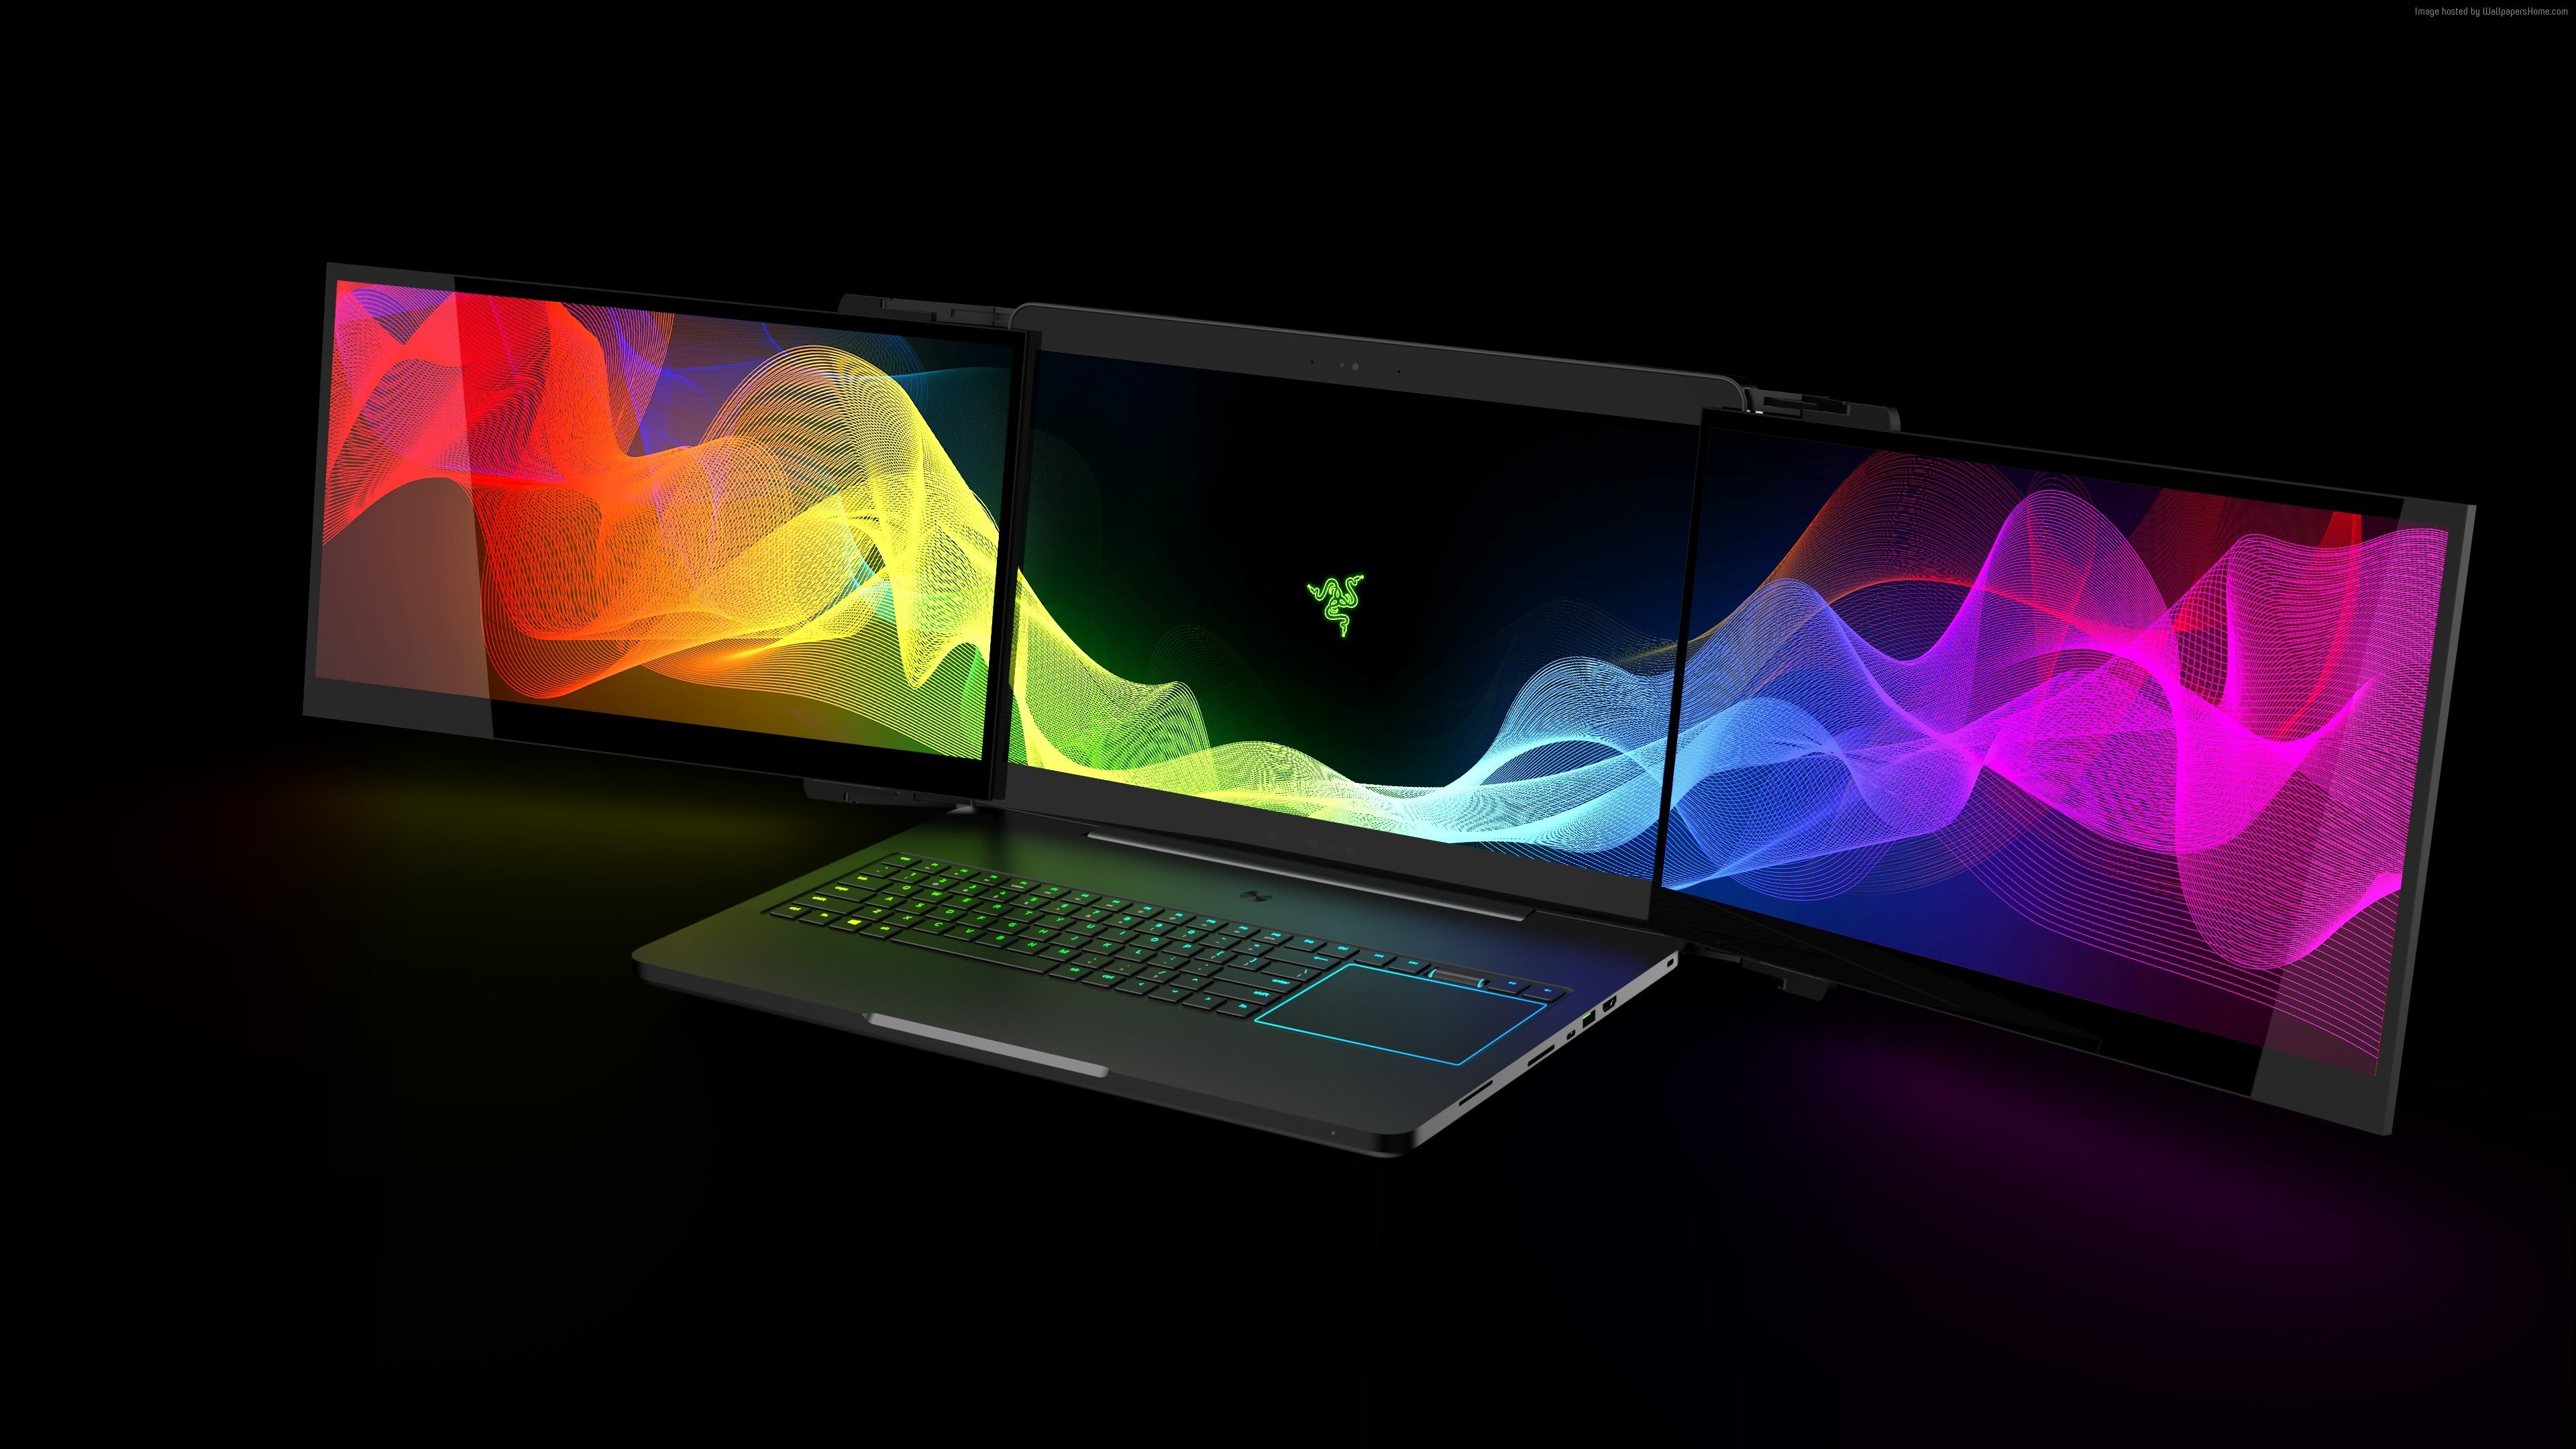 Cool Wallpapers For Laptop 4k